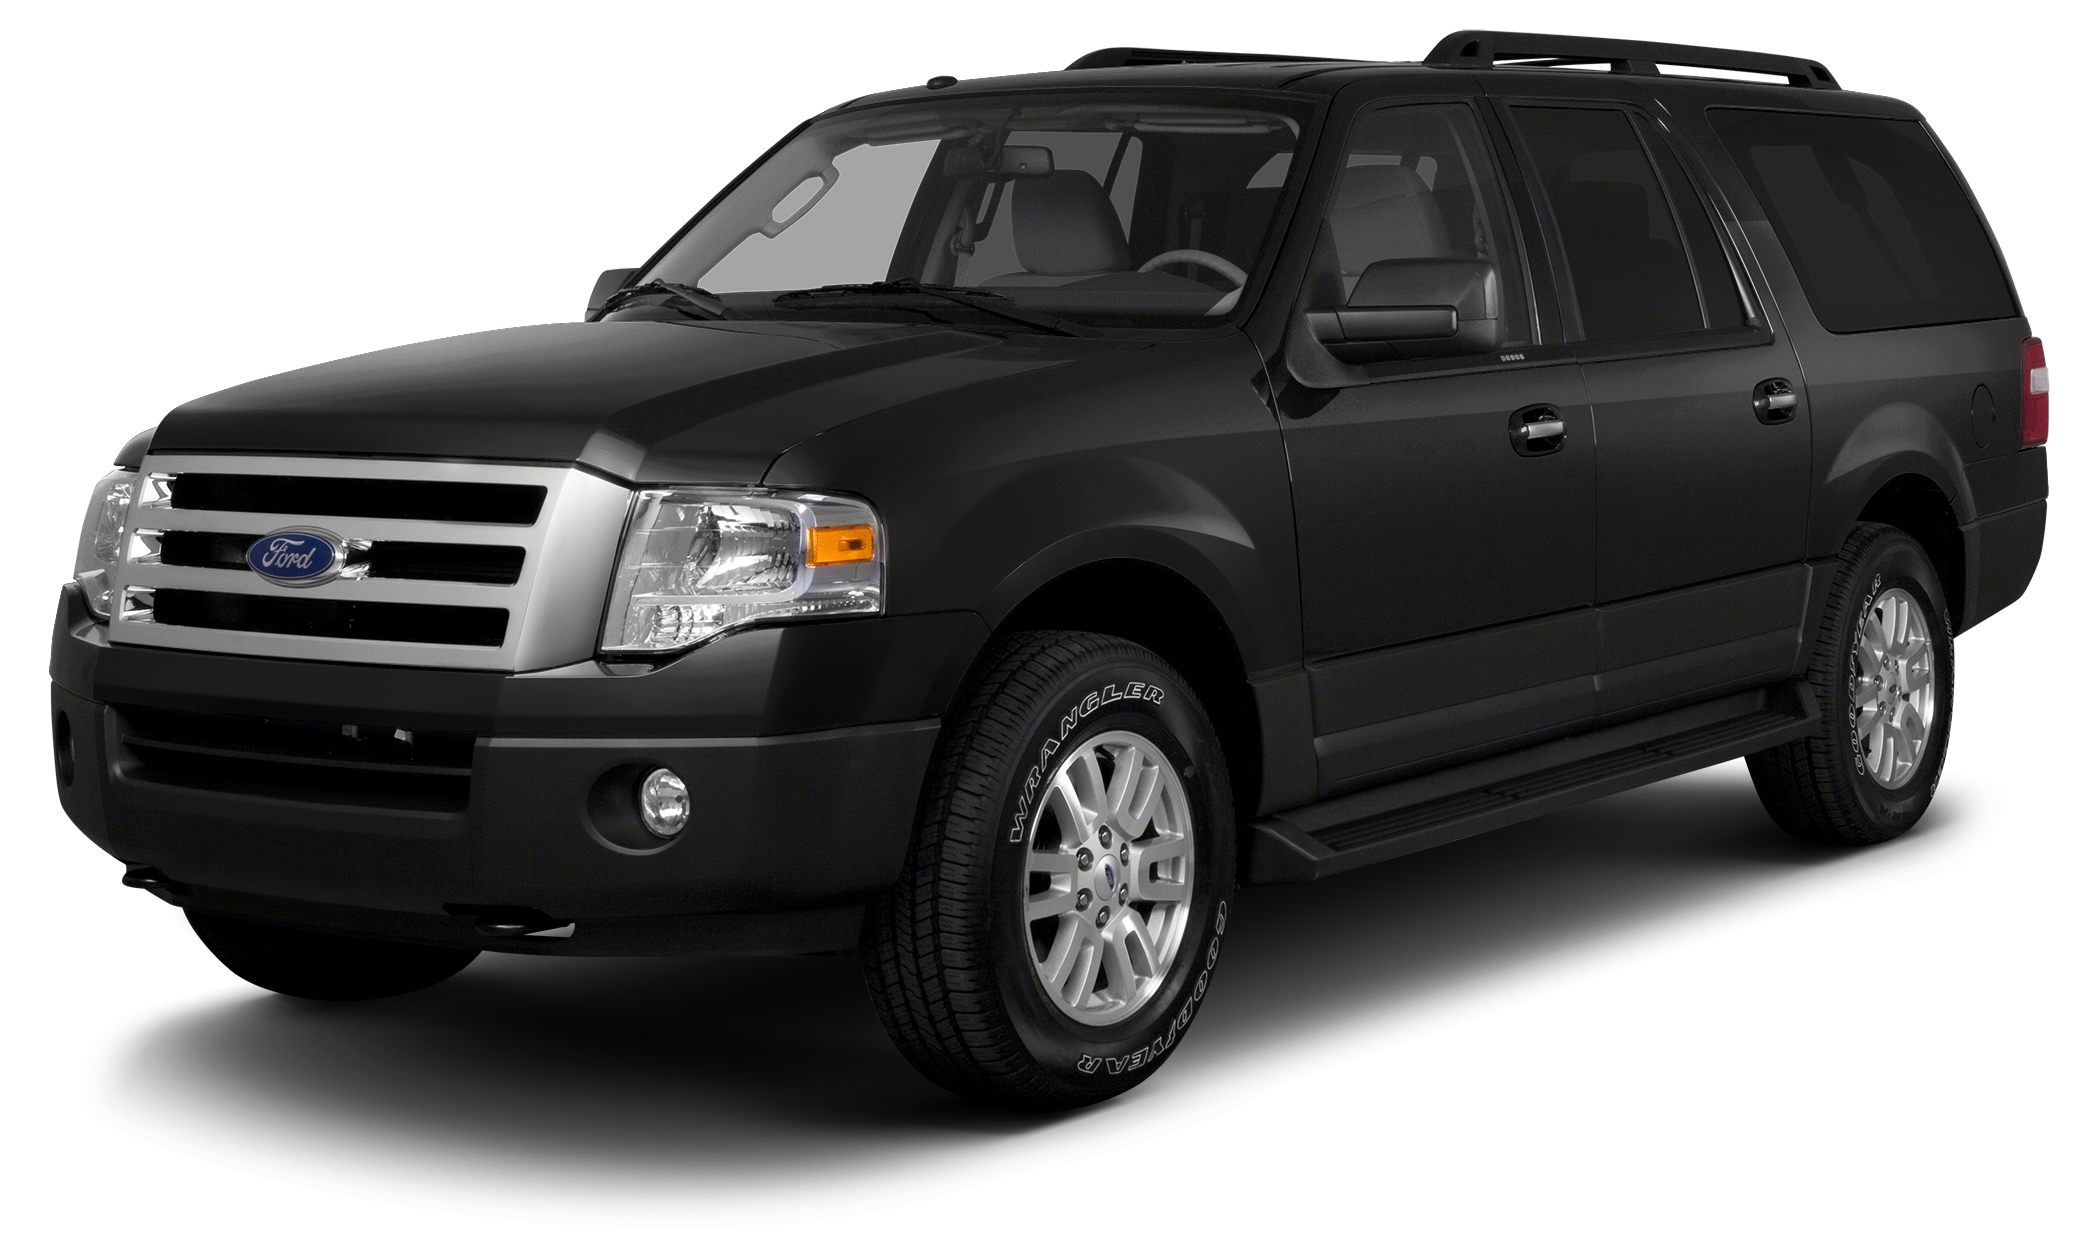 2013 Ford Expedition EL King Ranch Auto Check 1 Owner Ford Certified Pre-Owned 7 YEAR 100000 MI